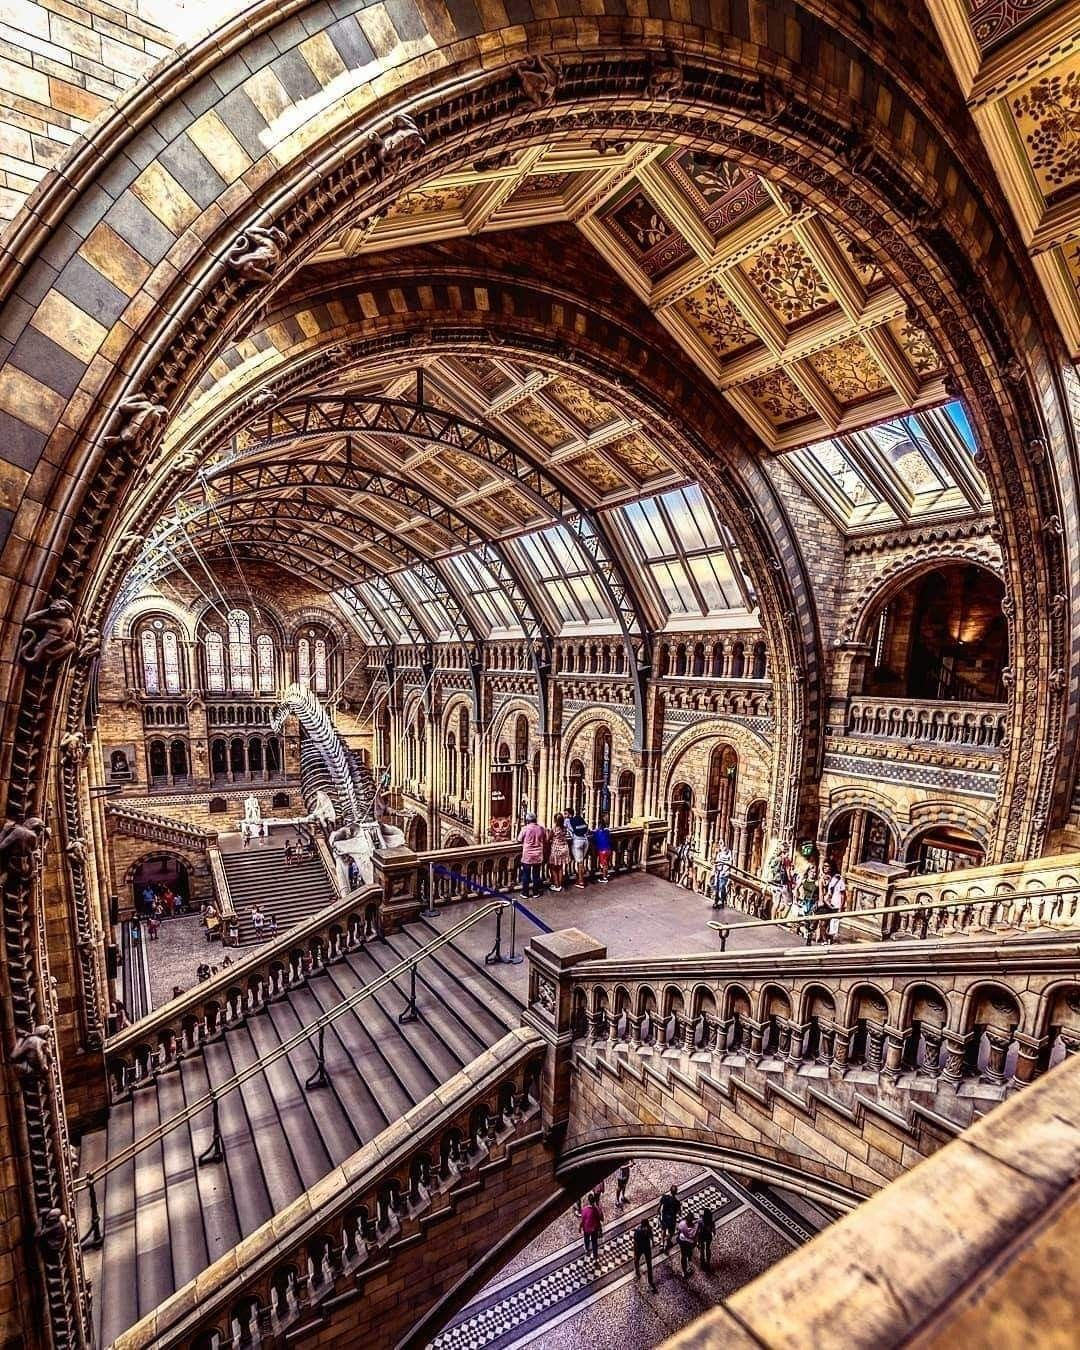 Known As A Cathedral To Nature London S Natural History Museum Is Home To More Than 80 Million S Natural History Museum London Nature London Natural History